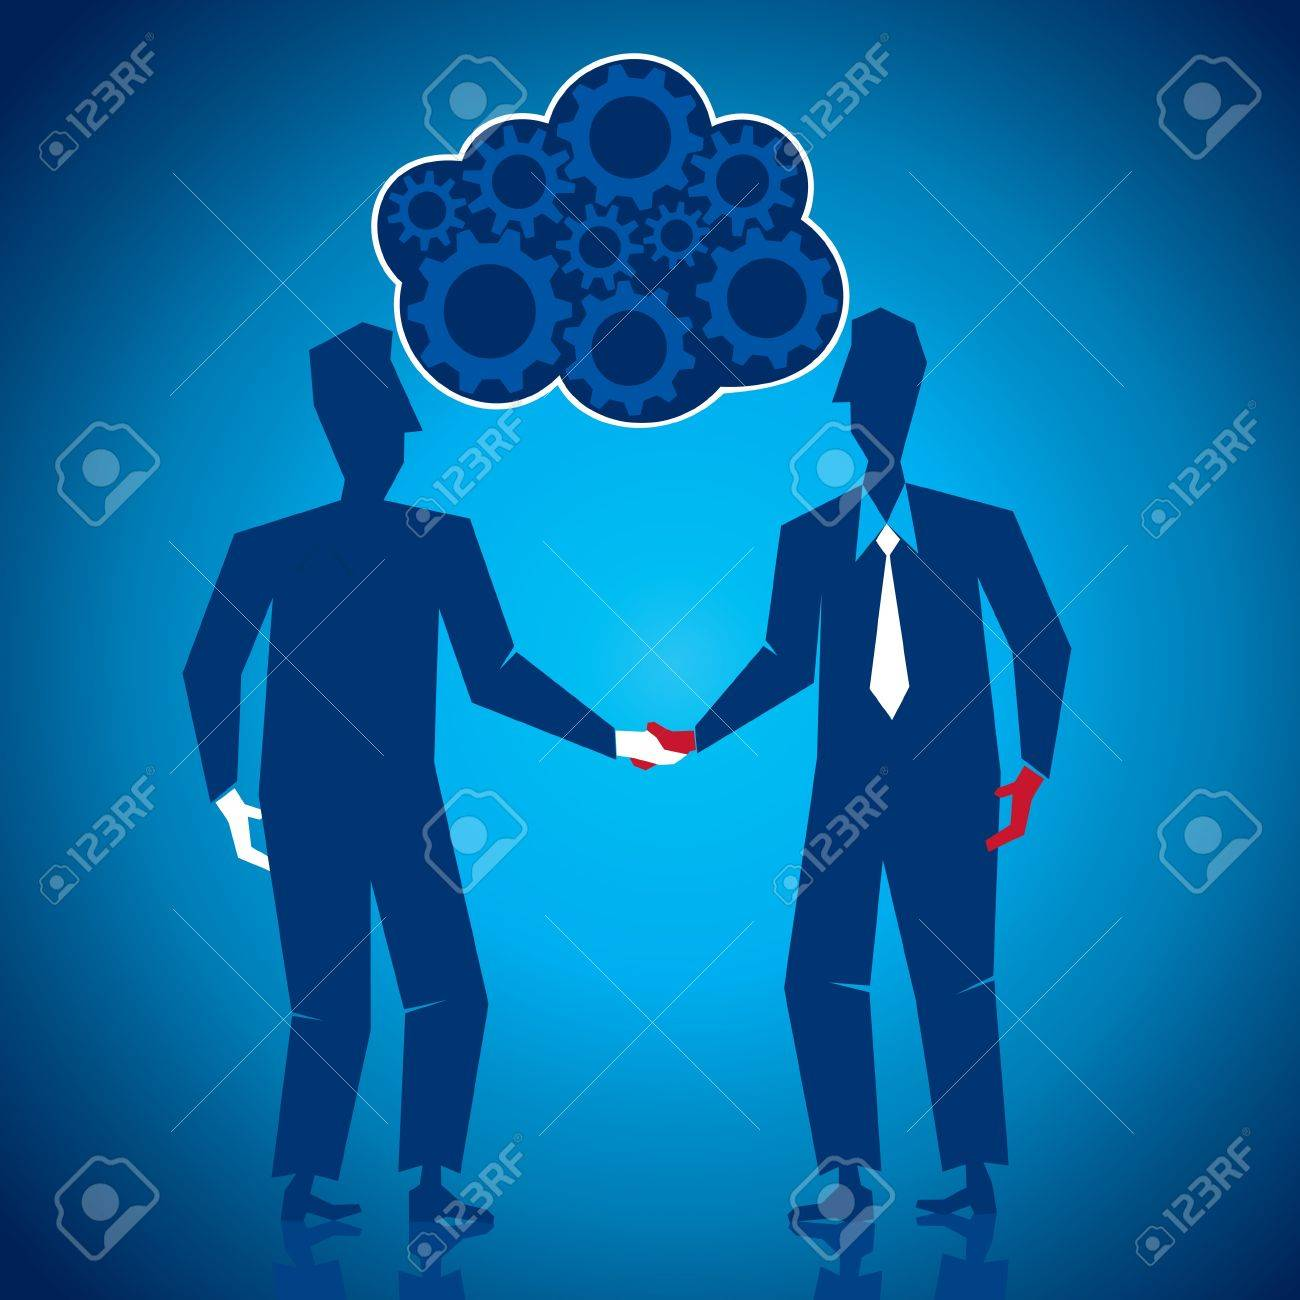 both businessmen shake hand s Stock Vector - 17108337